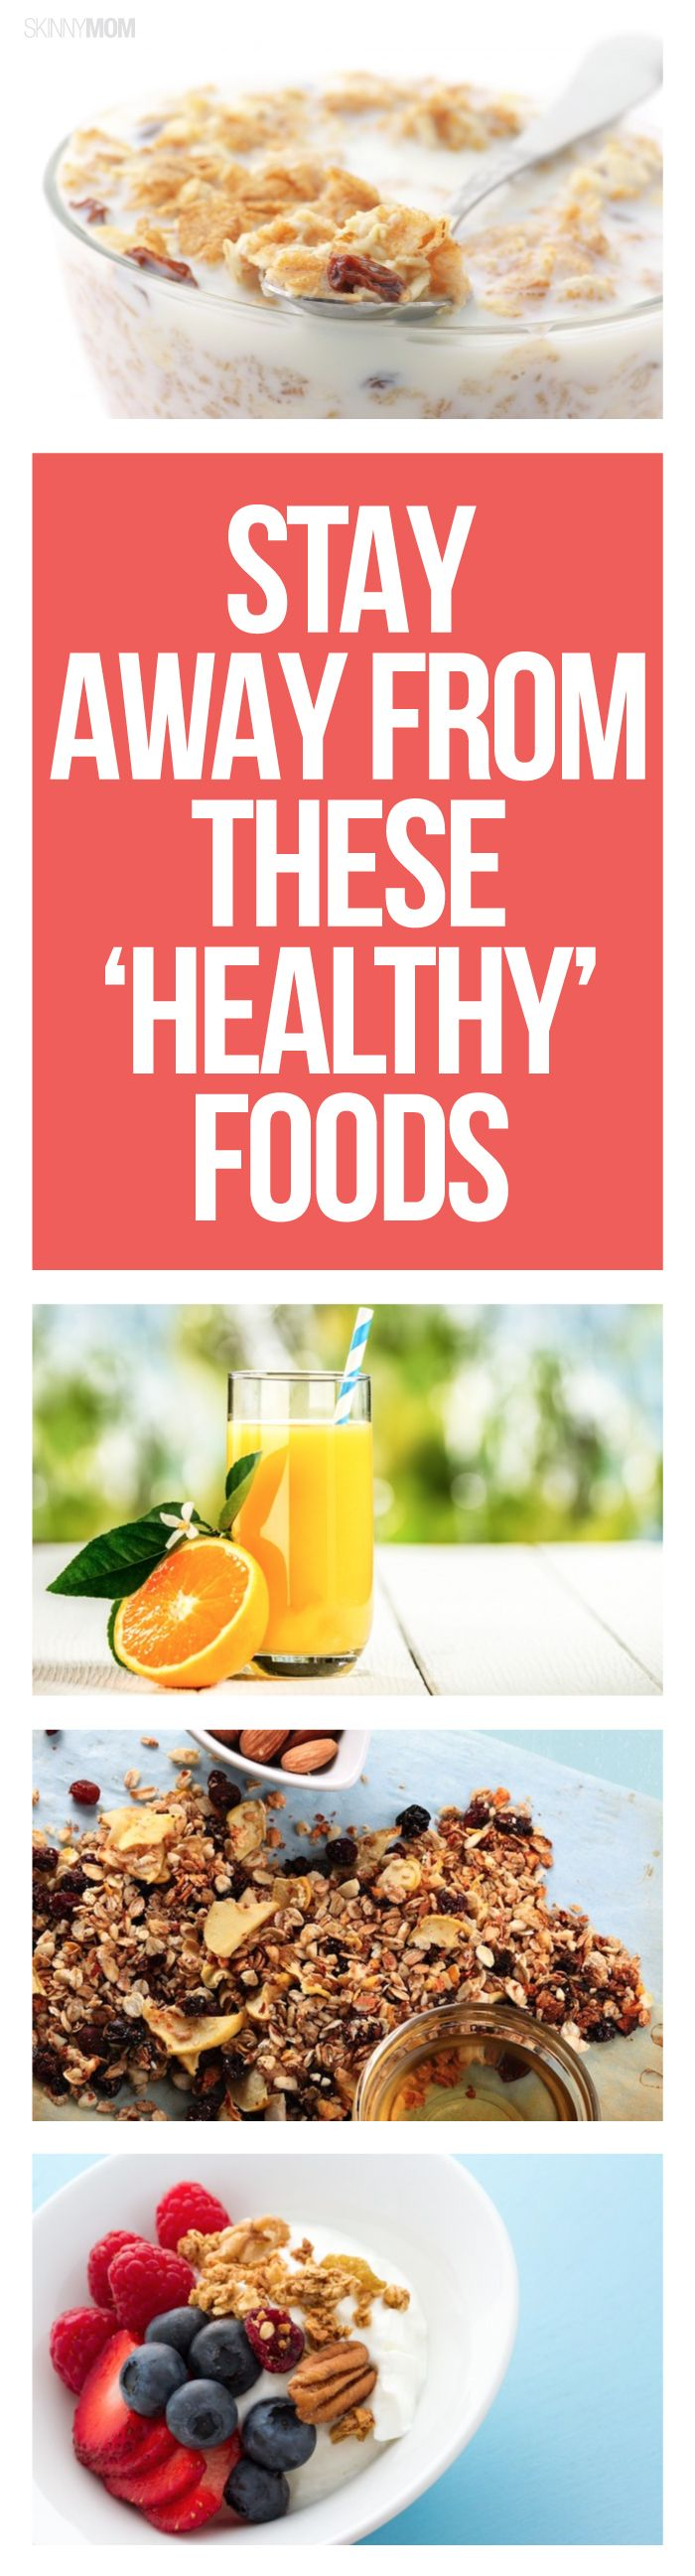 Food For Healthy Life